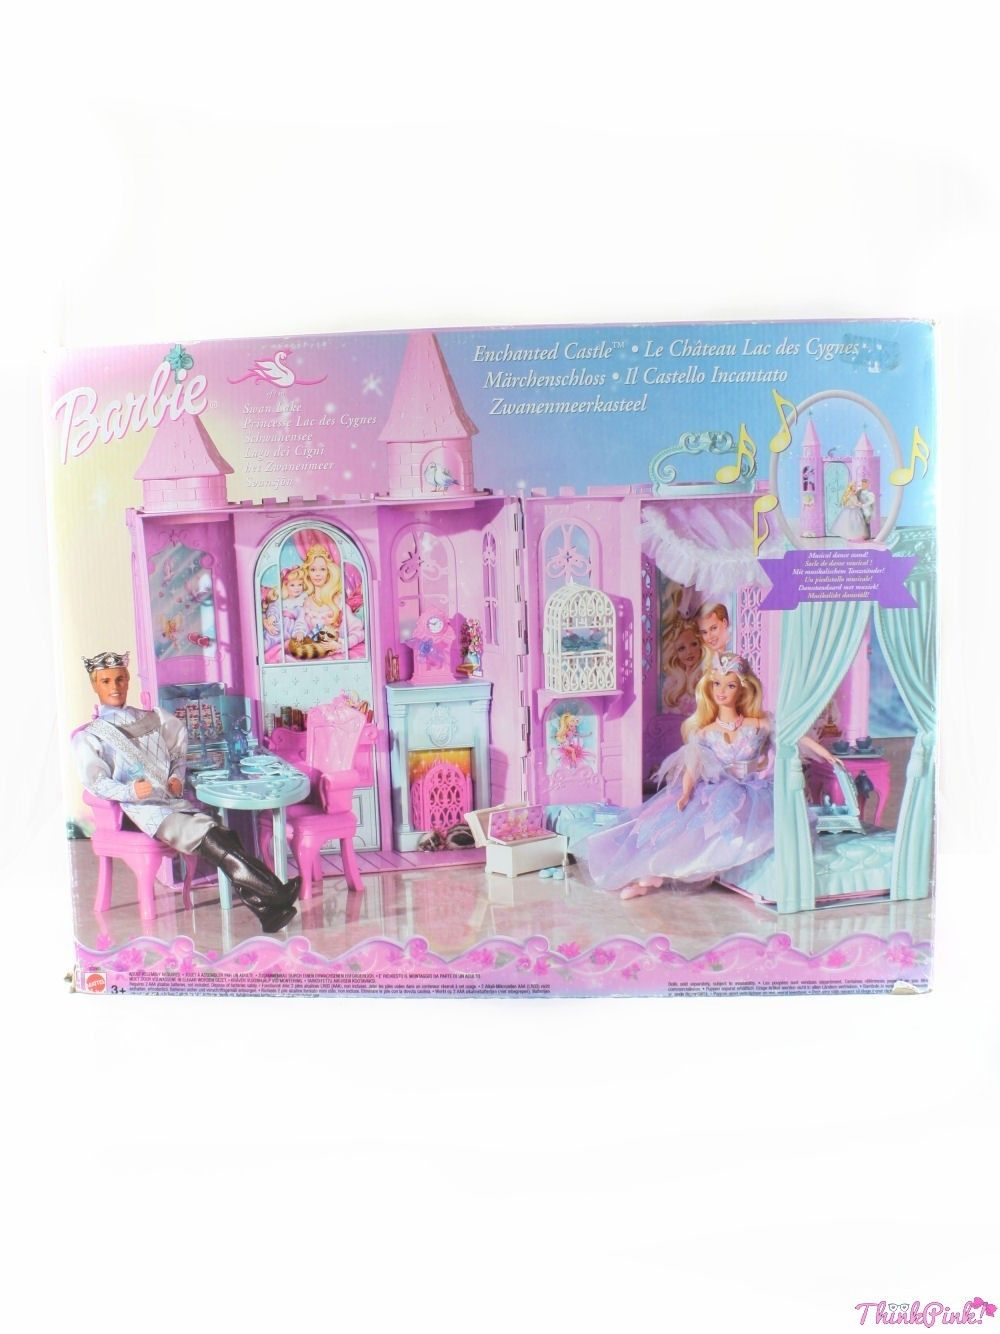 Swan Lake Miniature Dollhouse Doll House Picture